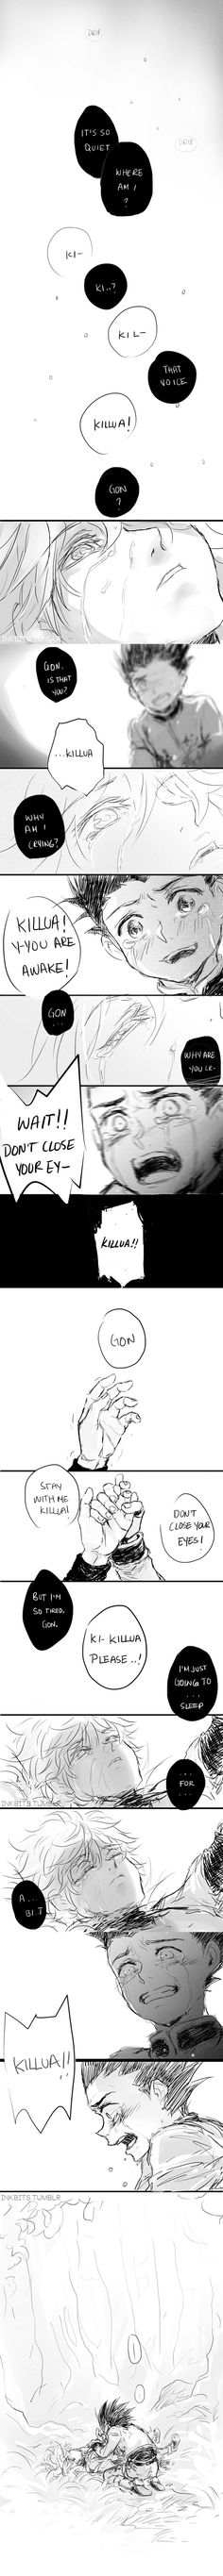 Killua and Gon #comic #crying man this brought tears to my eyes..! My babies...